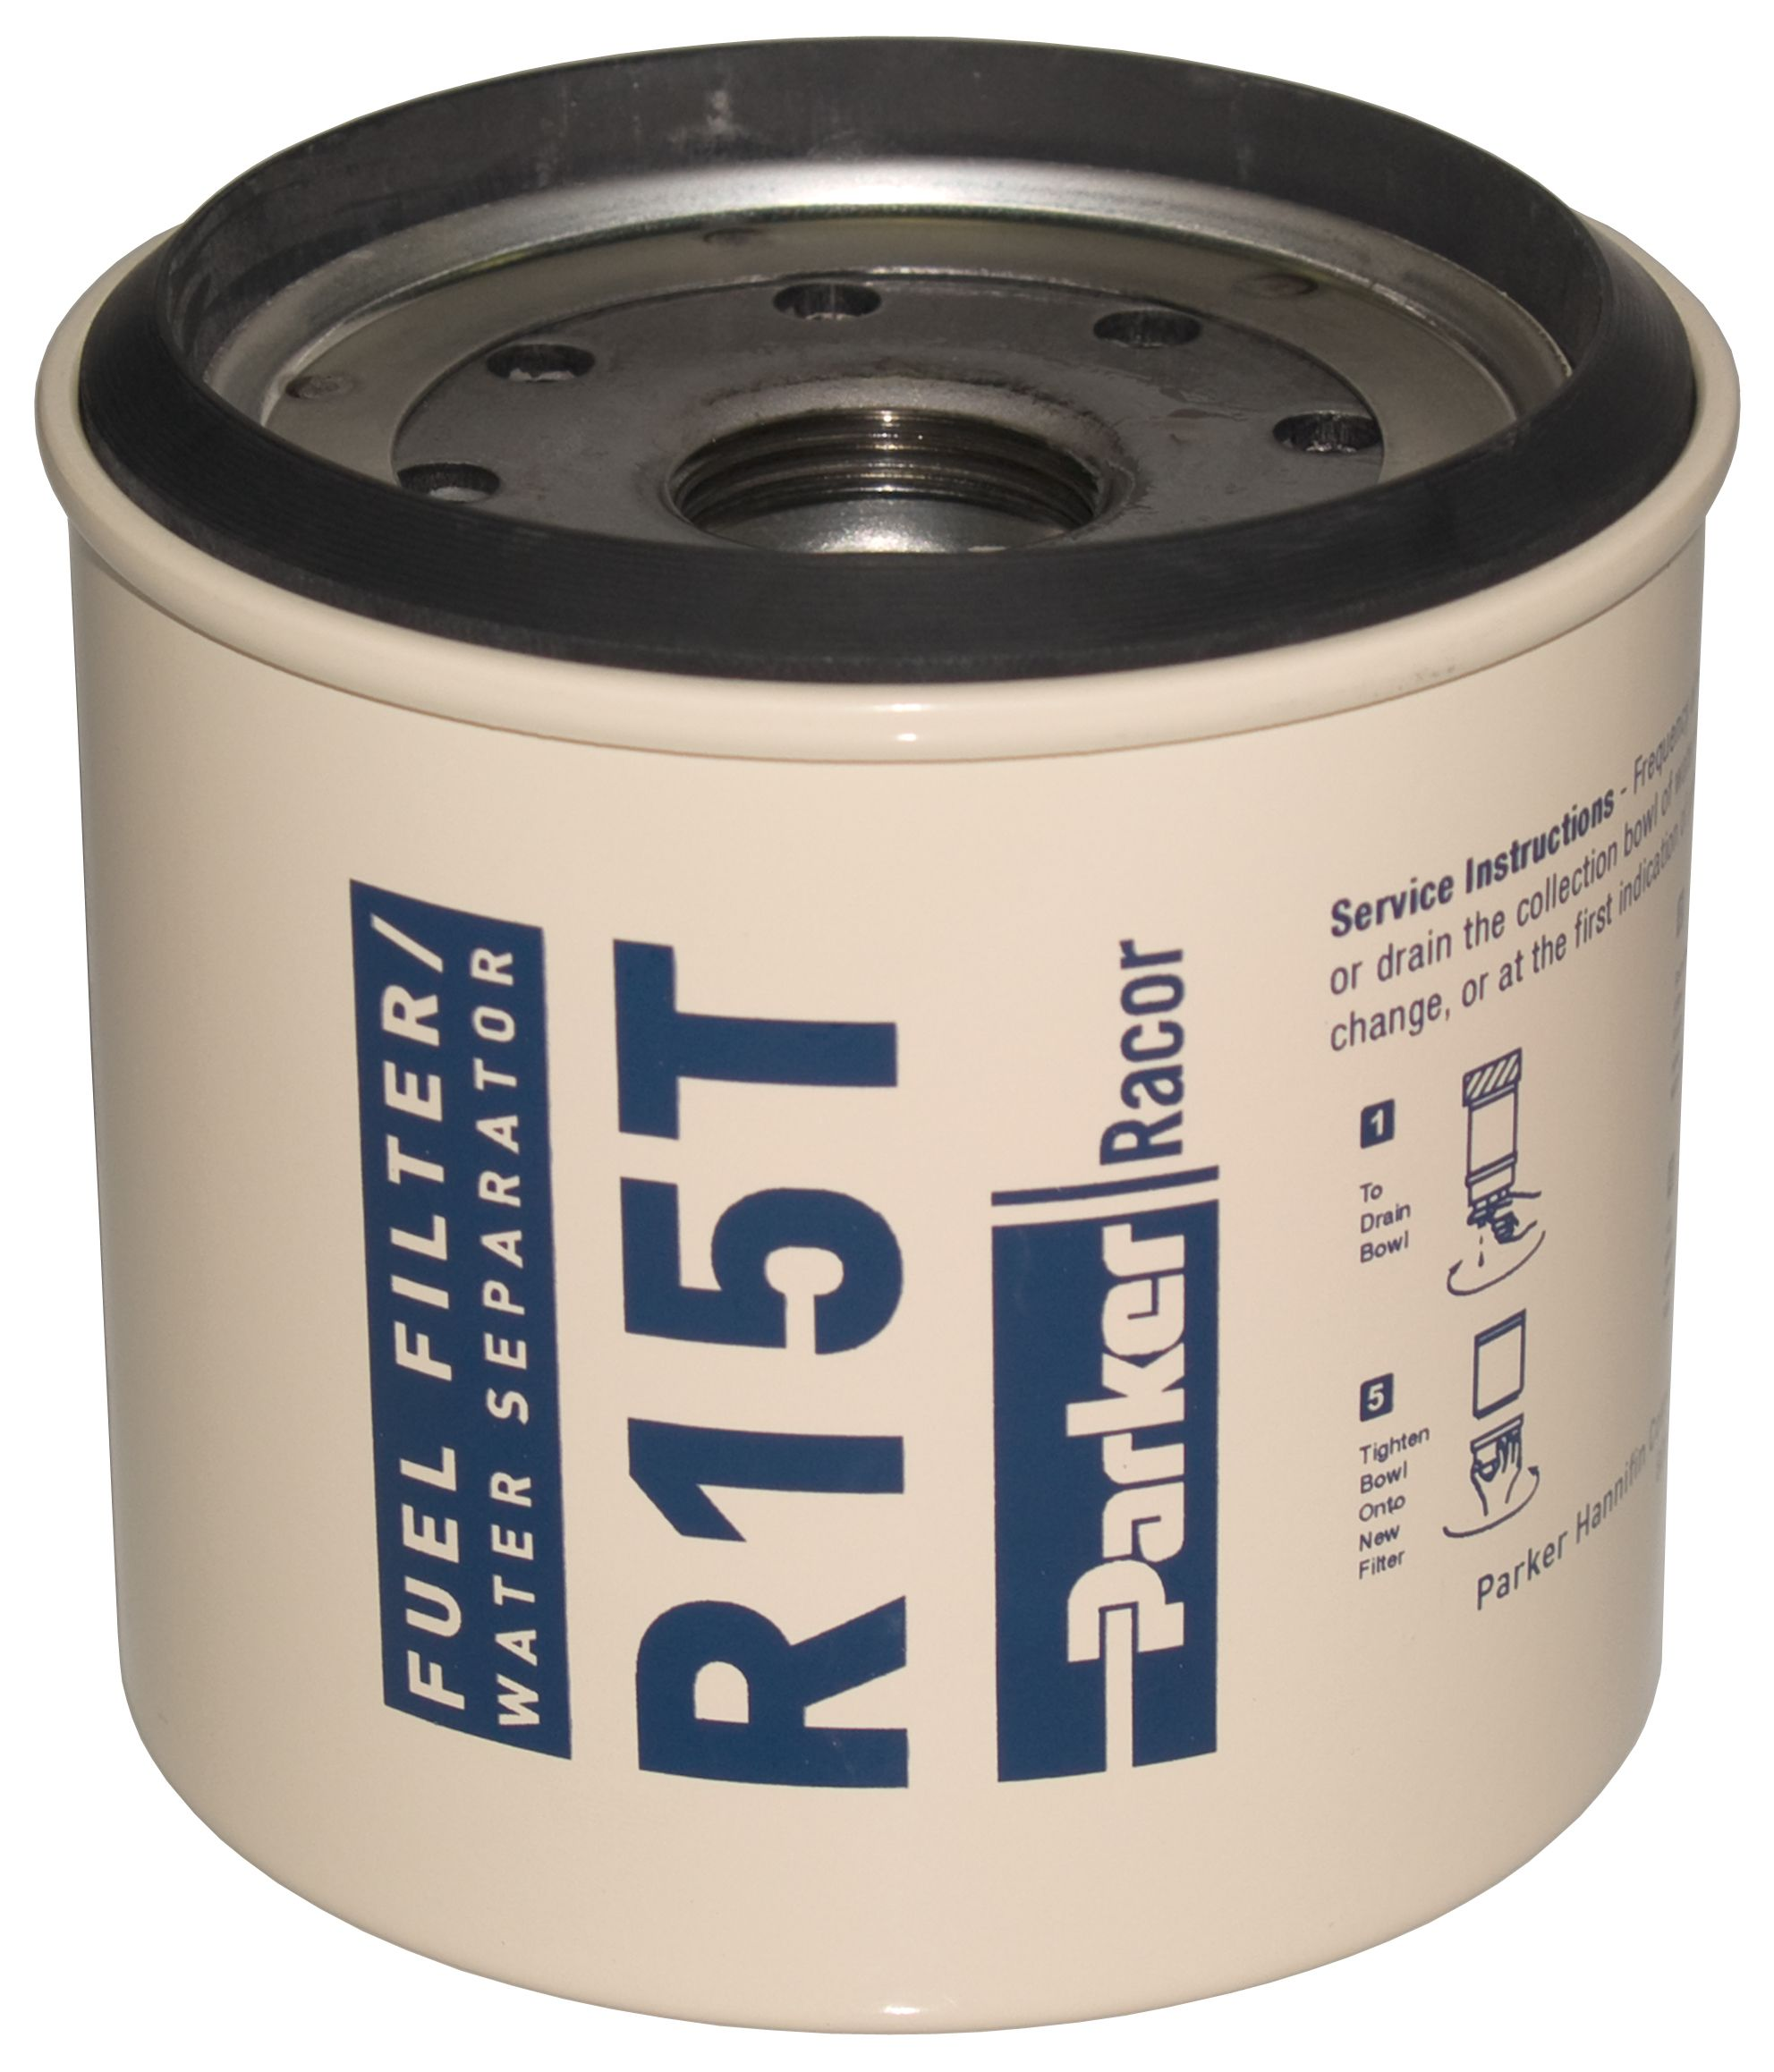 Racor R15 R15s R15t R15p Series Diesel Spin On Replacement Elements Parker Marine Fuel Filter